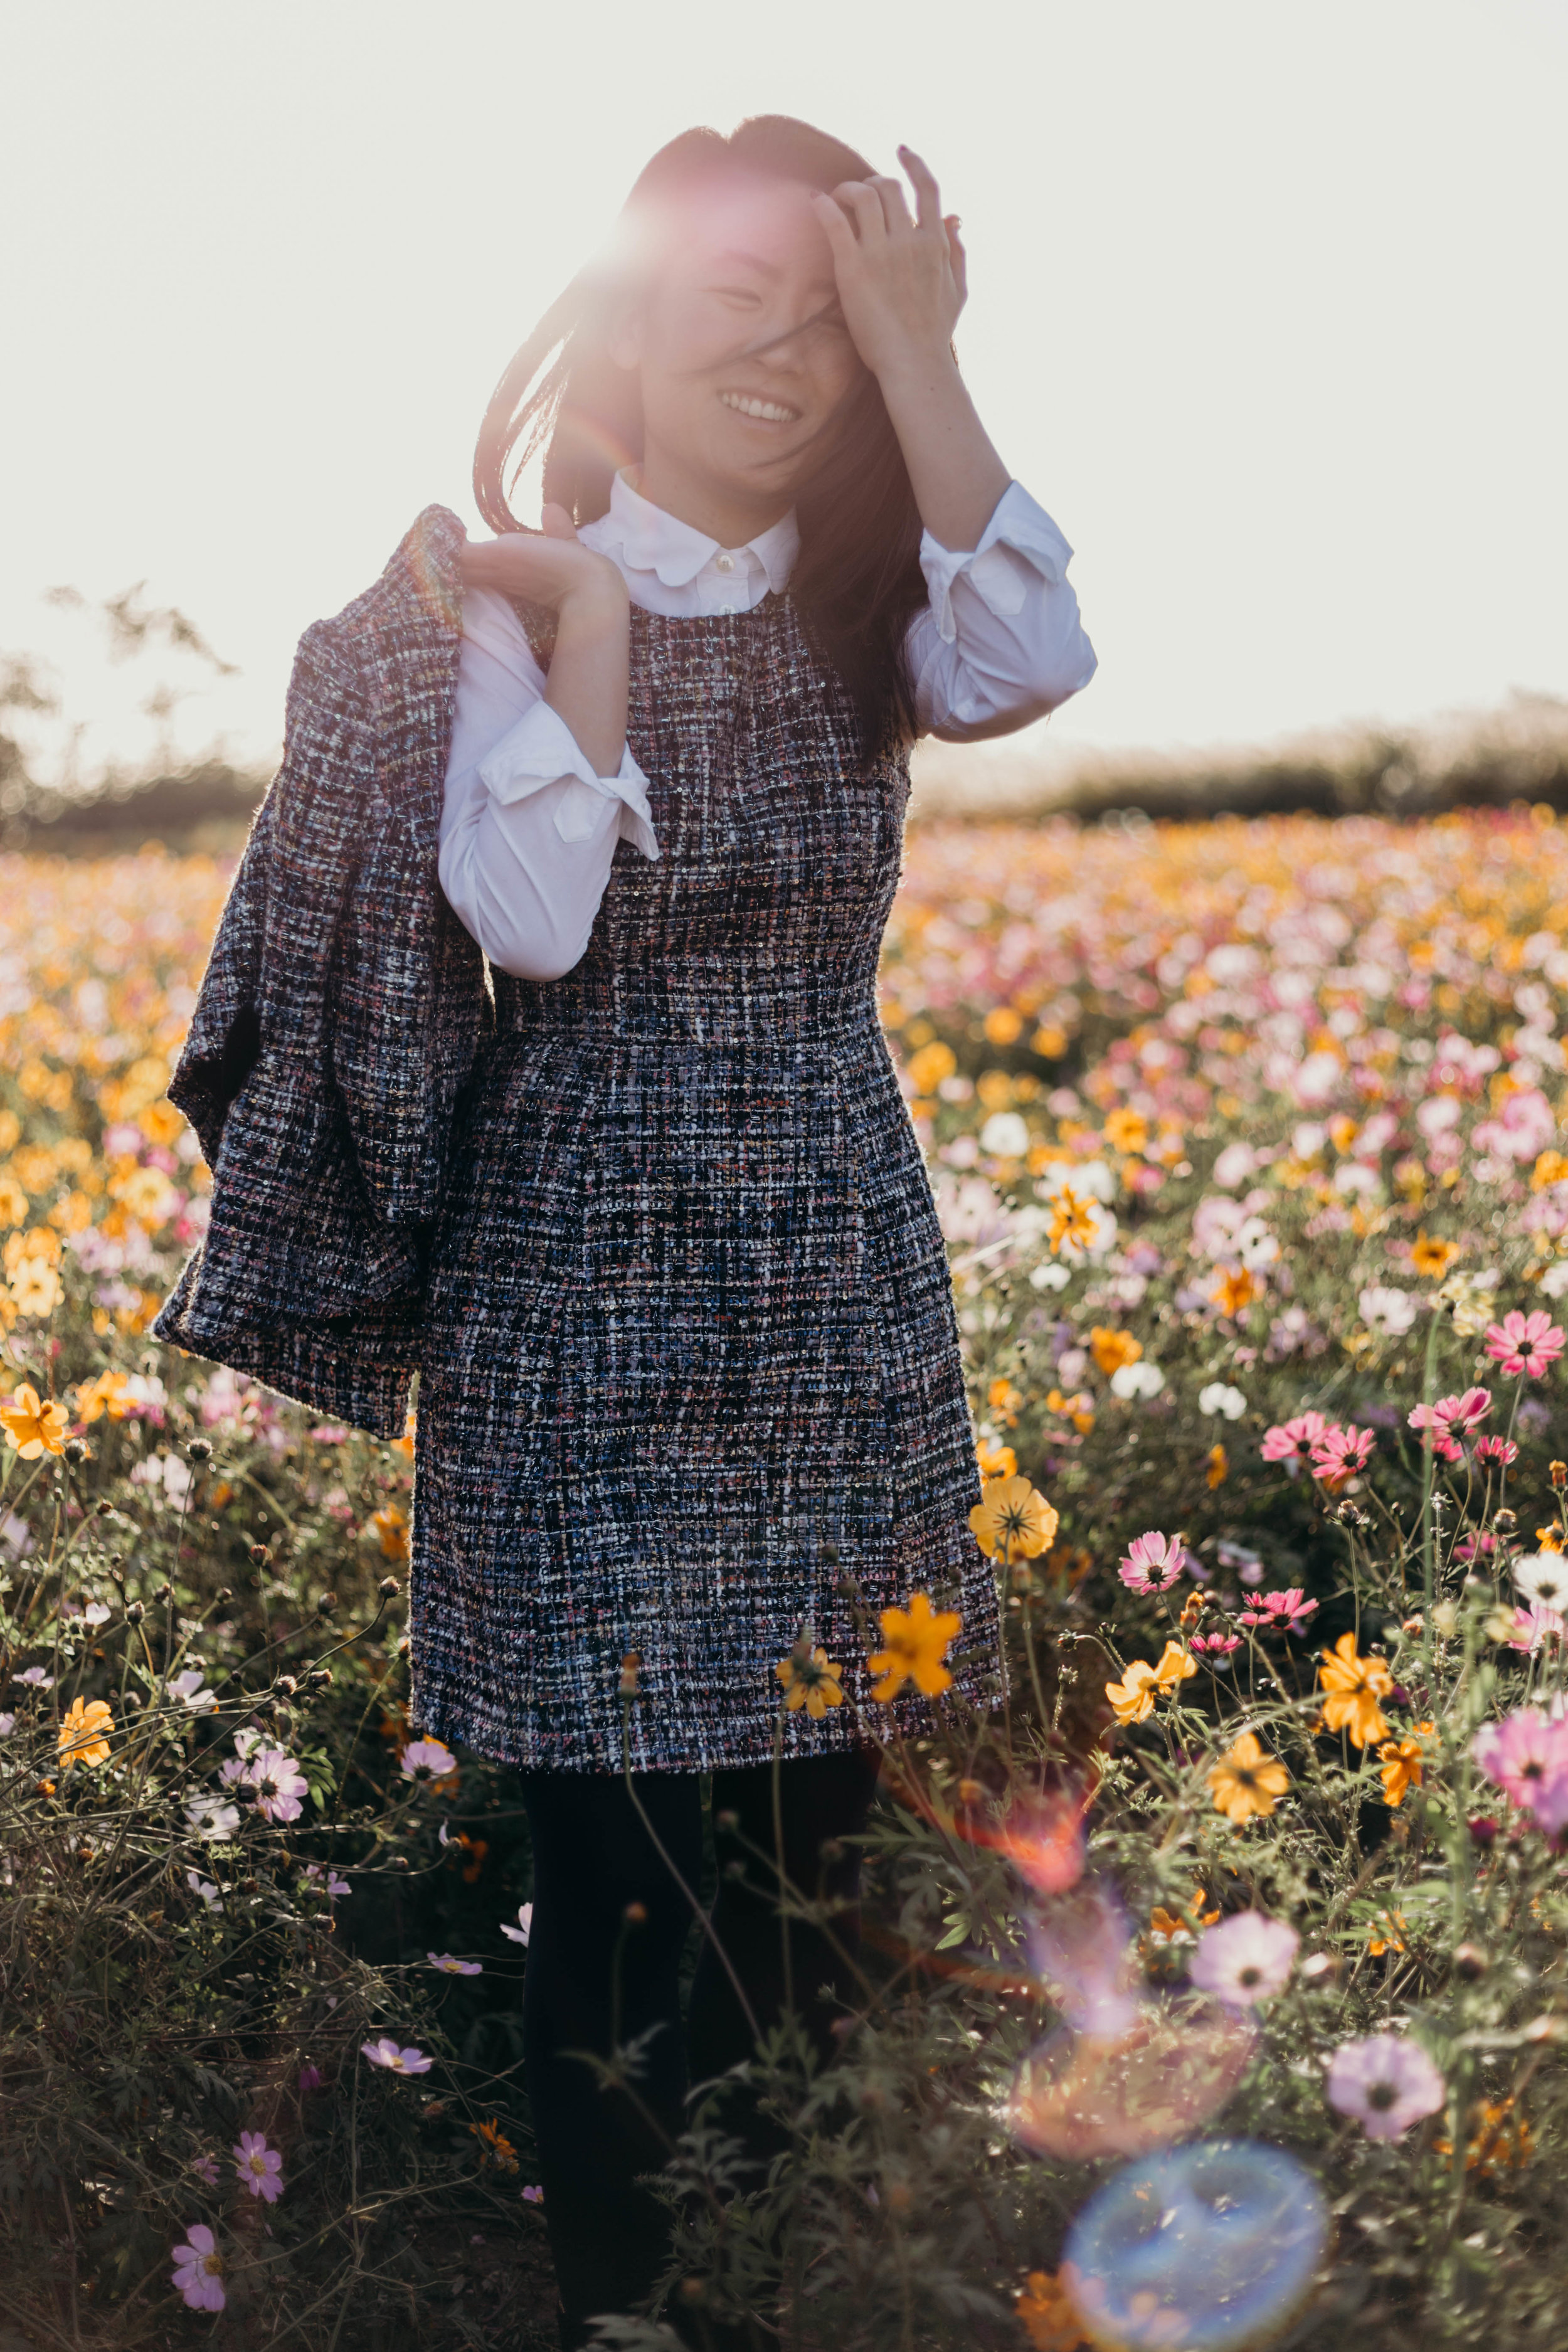 The Dress I Wore Most Last Semester and an Exciting Sale | On the Street Where We Live ( aretherelilactrees.com )  Gal Meets Glam Collection, Katherine jacket, Katherine dress, cosmos flowers, Haneul Park, Seoul World Cup Park, Seoul, South Korea